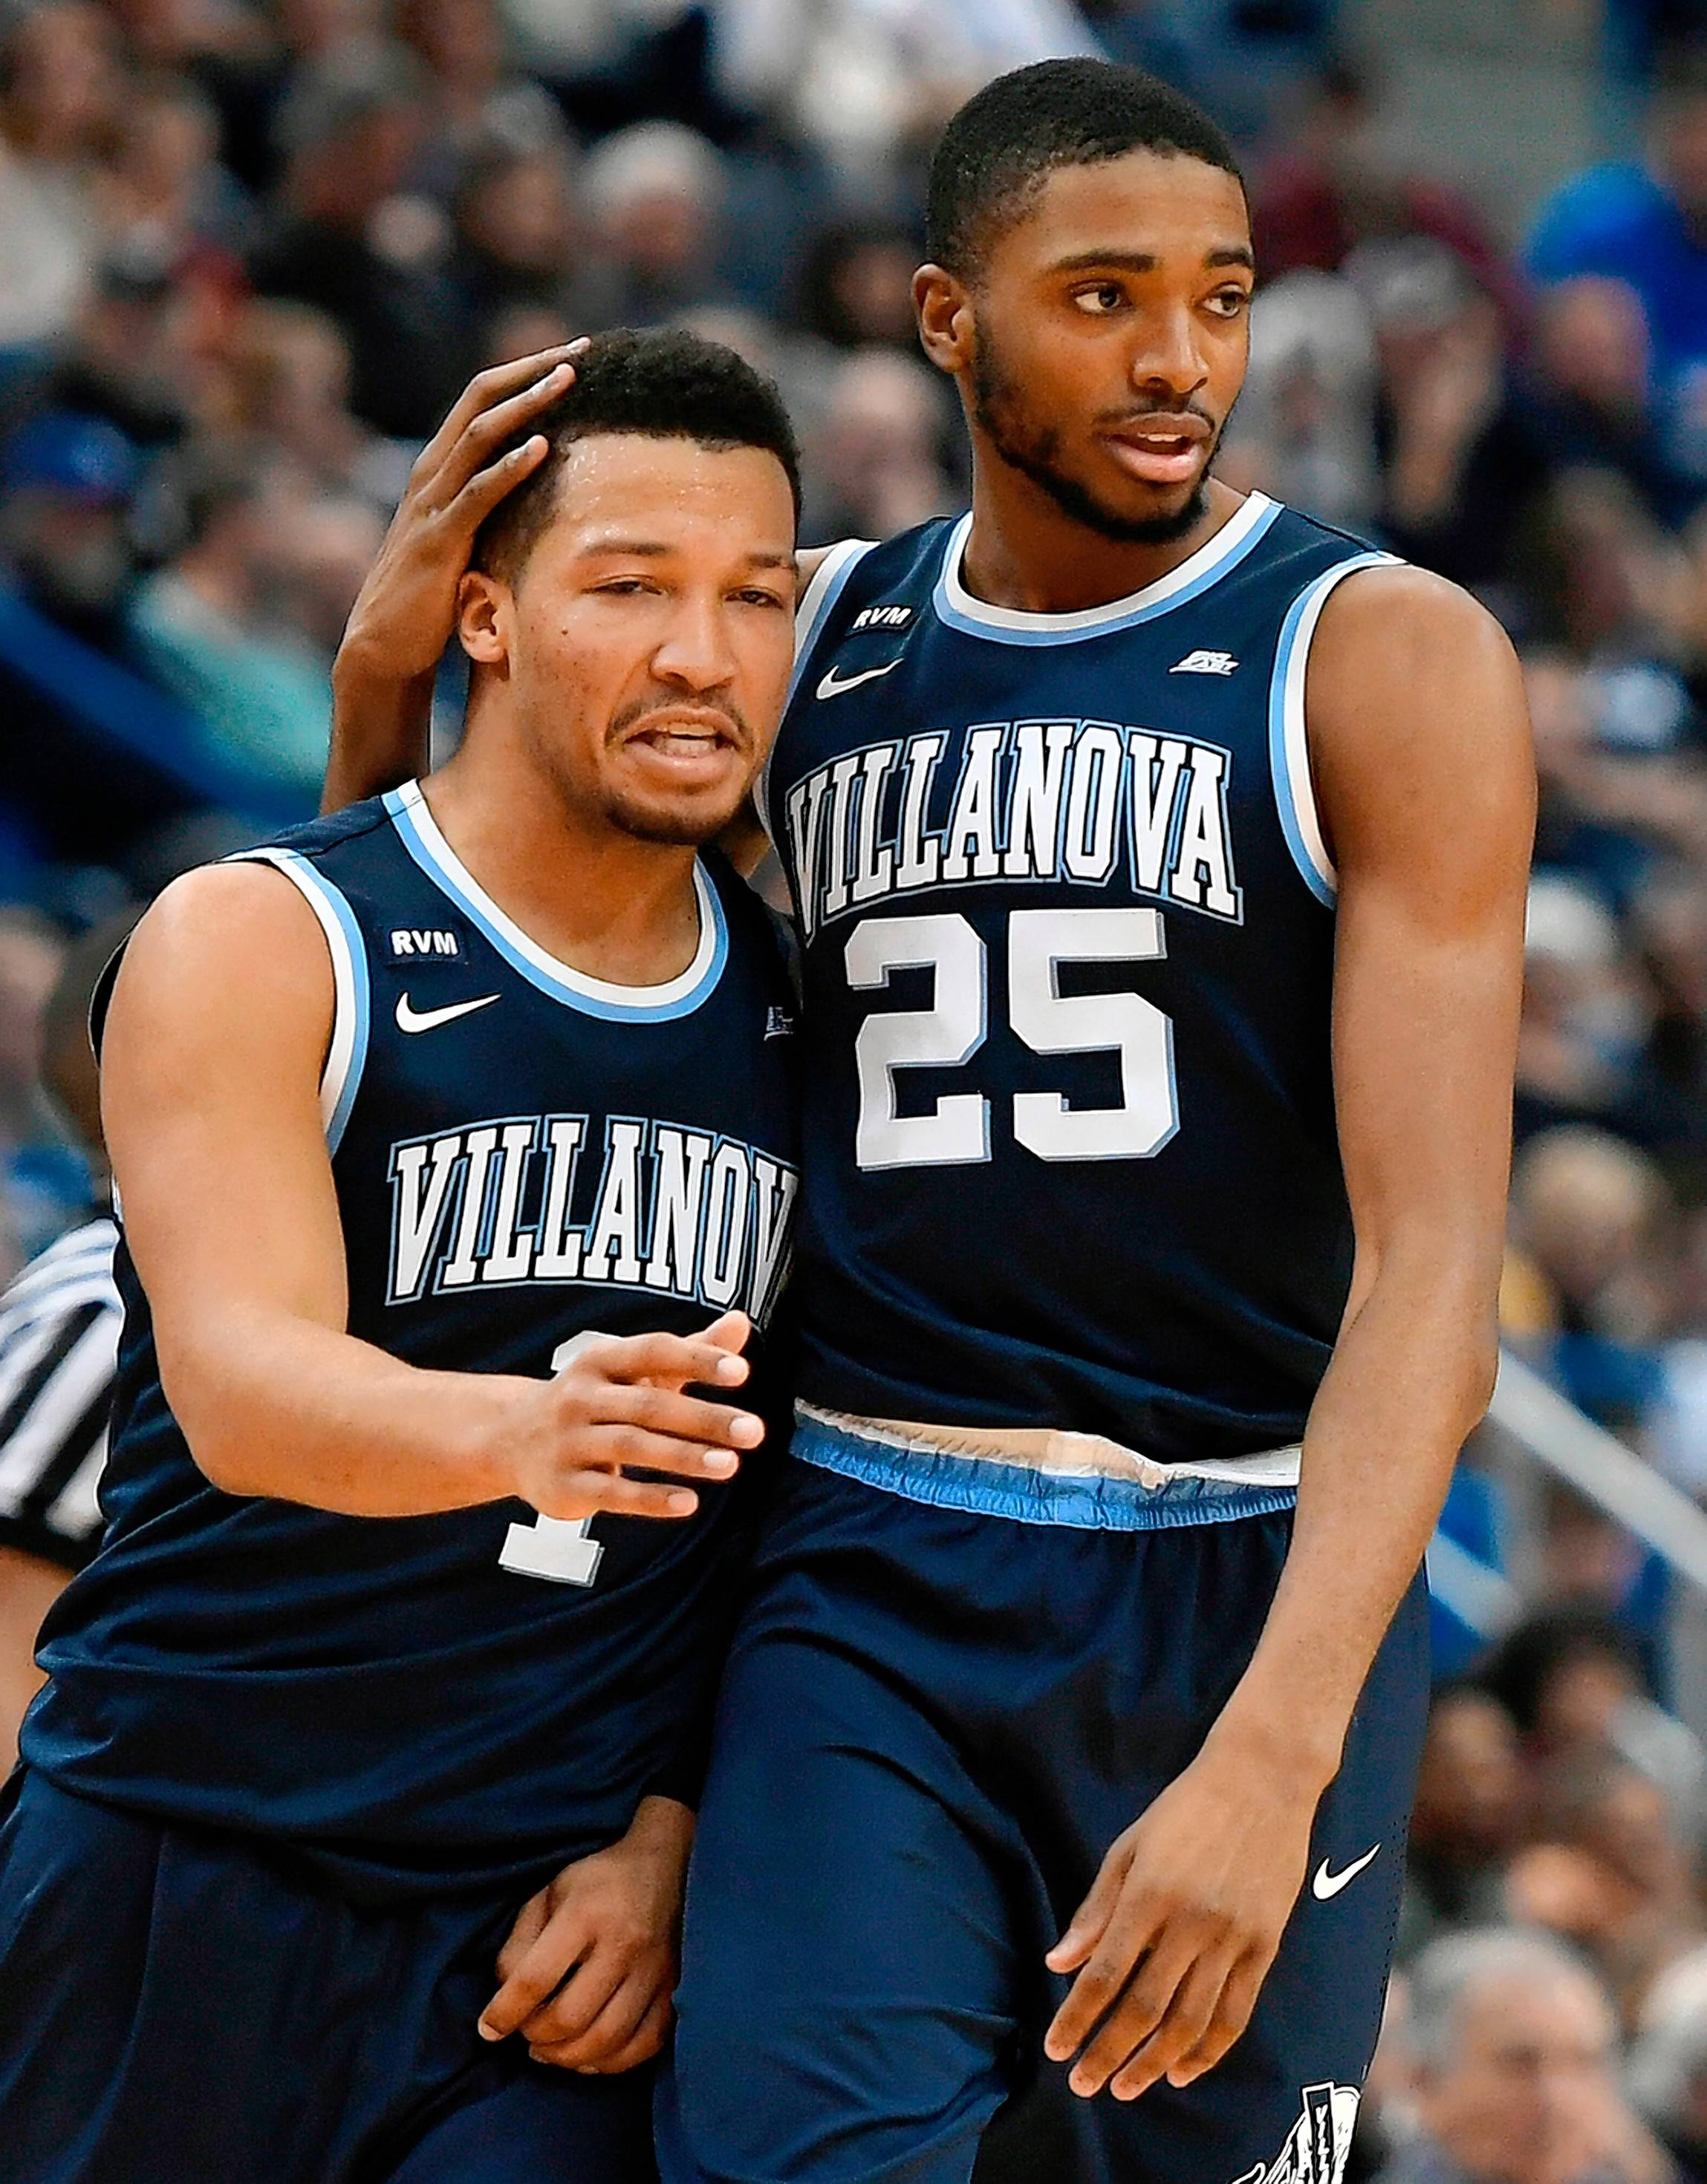 Villanova's Jalen Brunson, a native of Lincolnshire, is embraced by teammate Mikal Bridges during a game last season. Both are projected to be selected in the first round of the NBA draft.